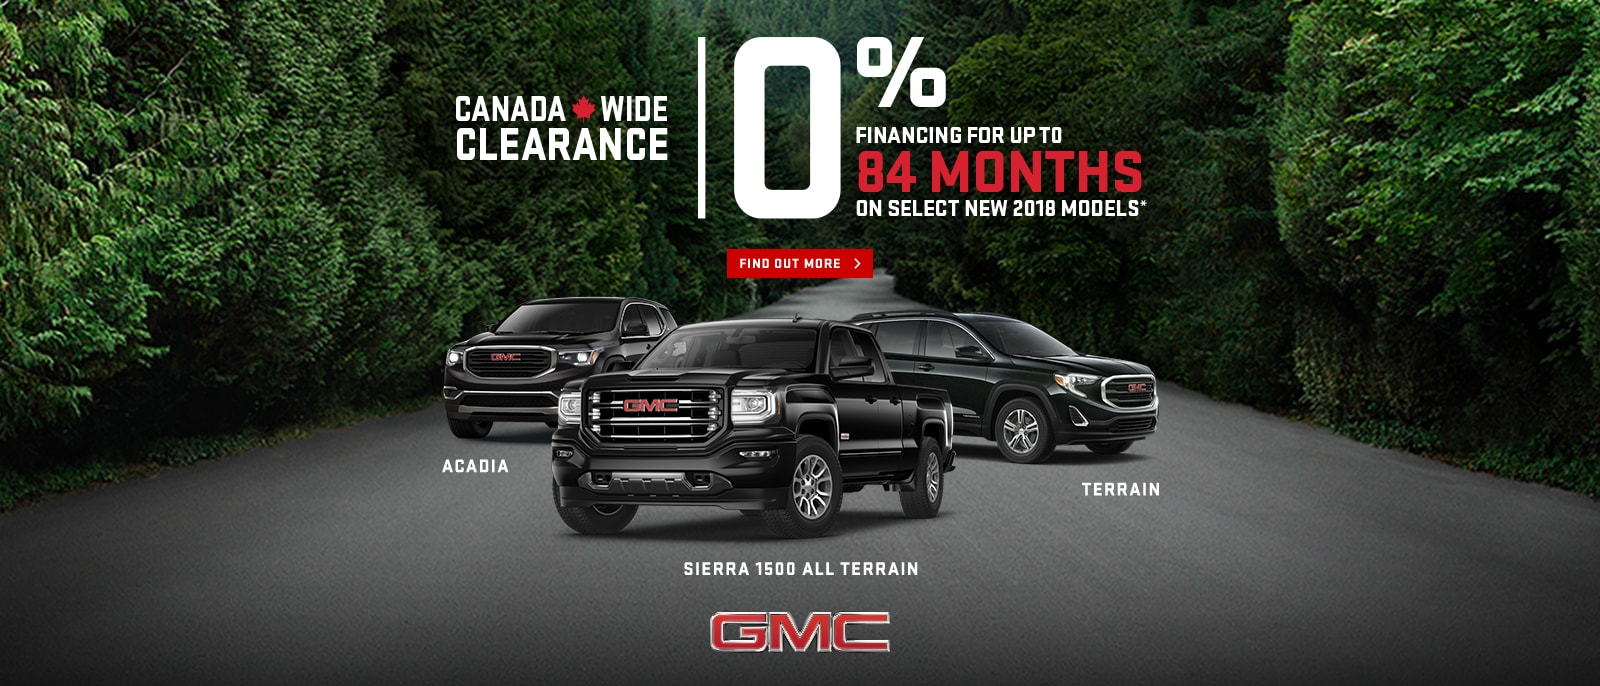 Canada Wide Clearance 0% Financing up to 84 Months Canyon Sierra 1500 Terrain Acadia Yukon Ajax VanDusen Durham Region1600x686-min